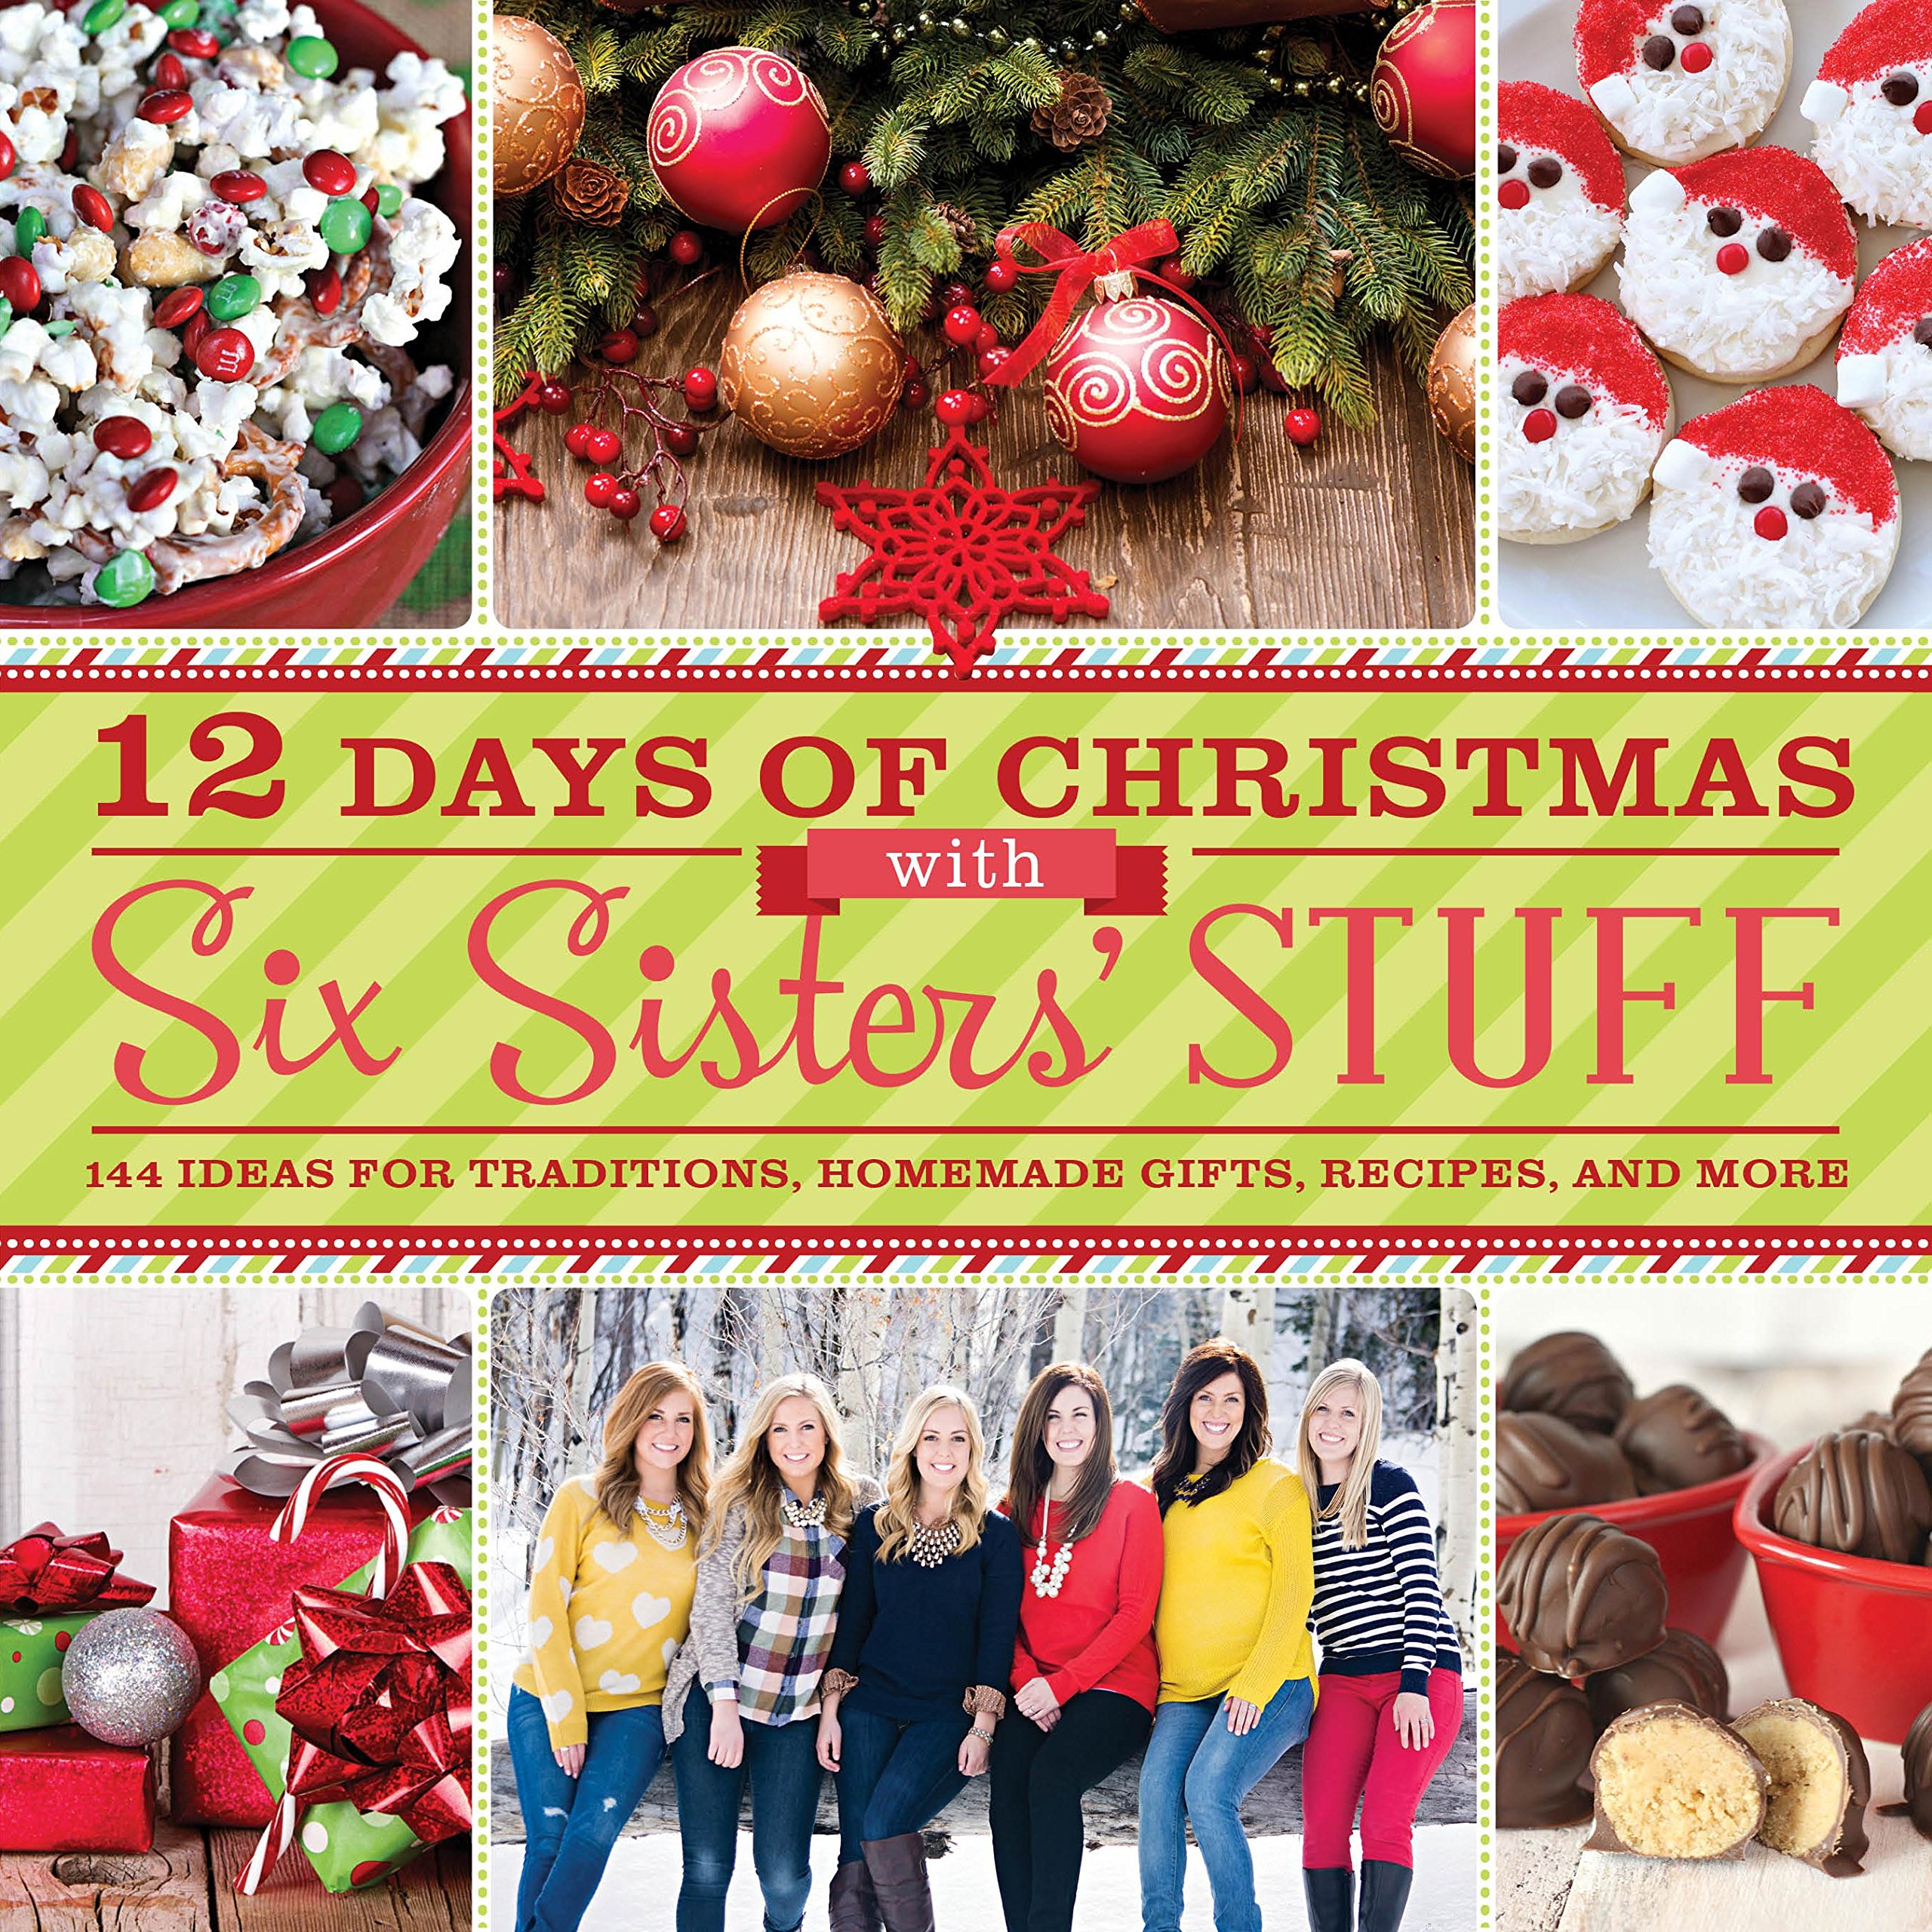 12 days of christmas with six sisters stuff recipes traditions homemade gifts and so much more six sisters stuff 0783027079357 amazoncom books - How Many Gifts In 12 Days Of Christmas